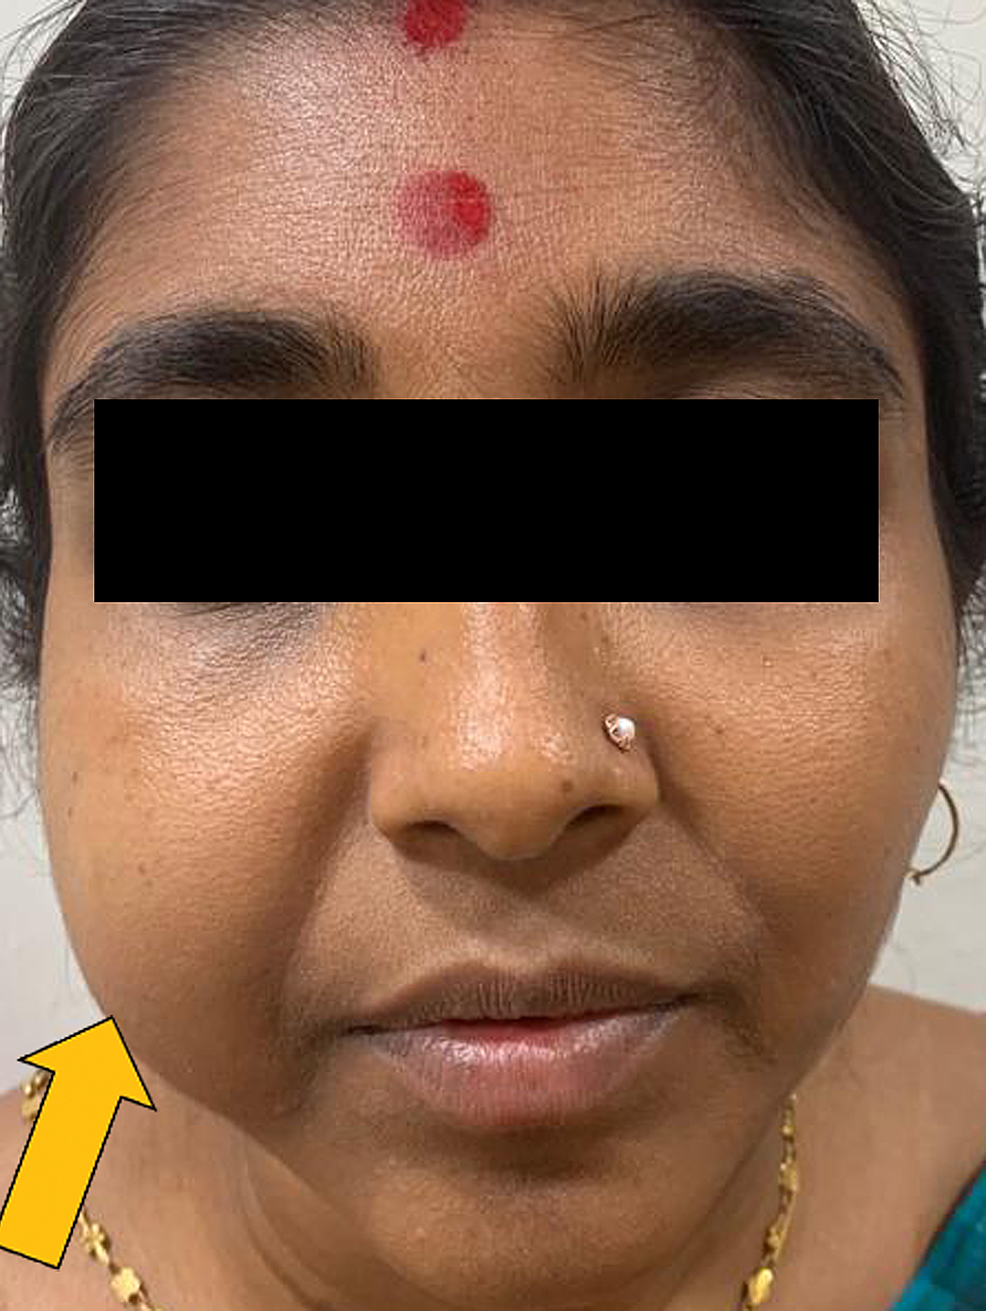 Extraoral-view-showing-swelling-in-the-right-cheek-region.